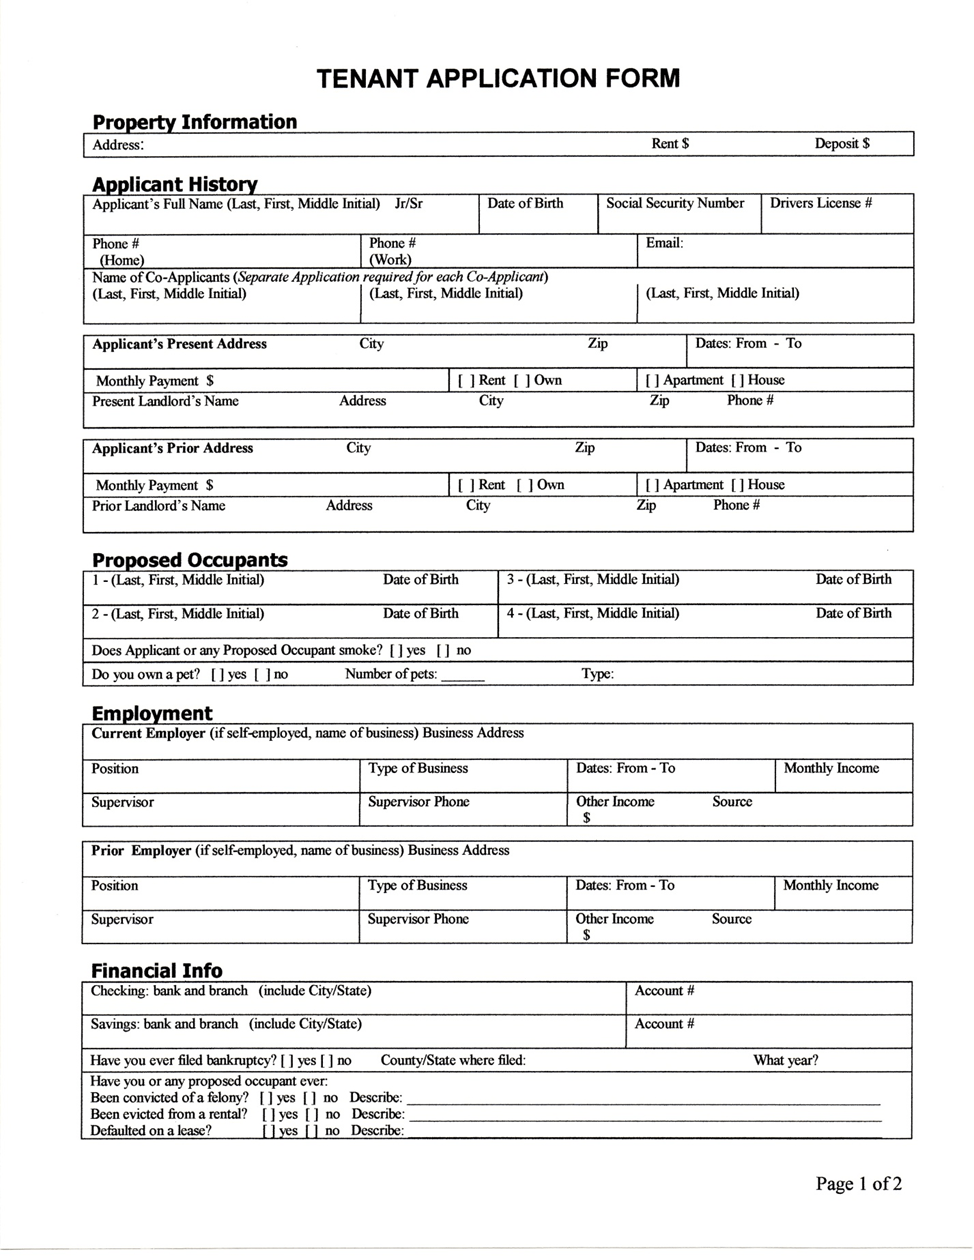 Credit Application Form Download Free Documents For Pdf Application Form Rental Application Form For Tenants